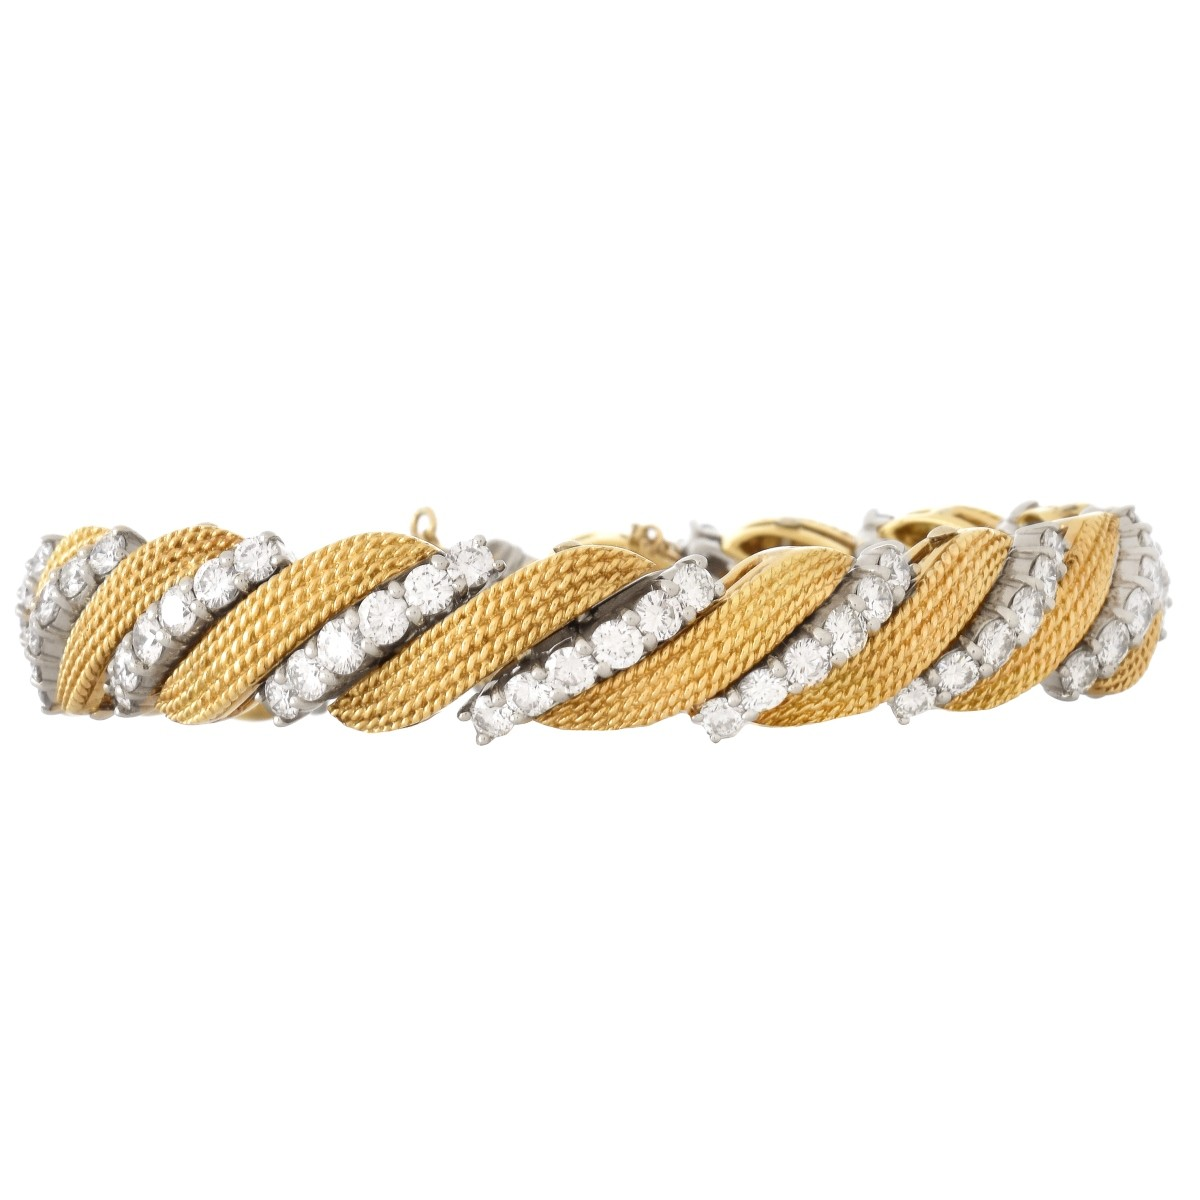 10.0ct TW Diamond and 18K Gold Bracelet